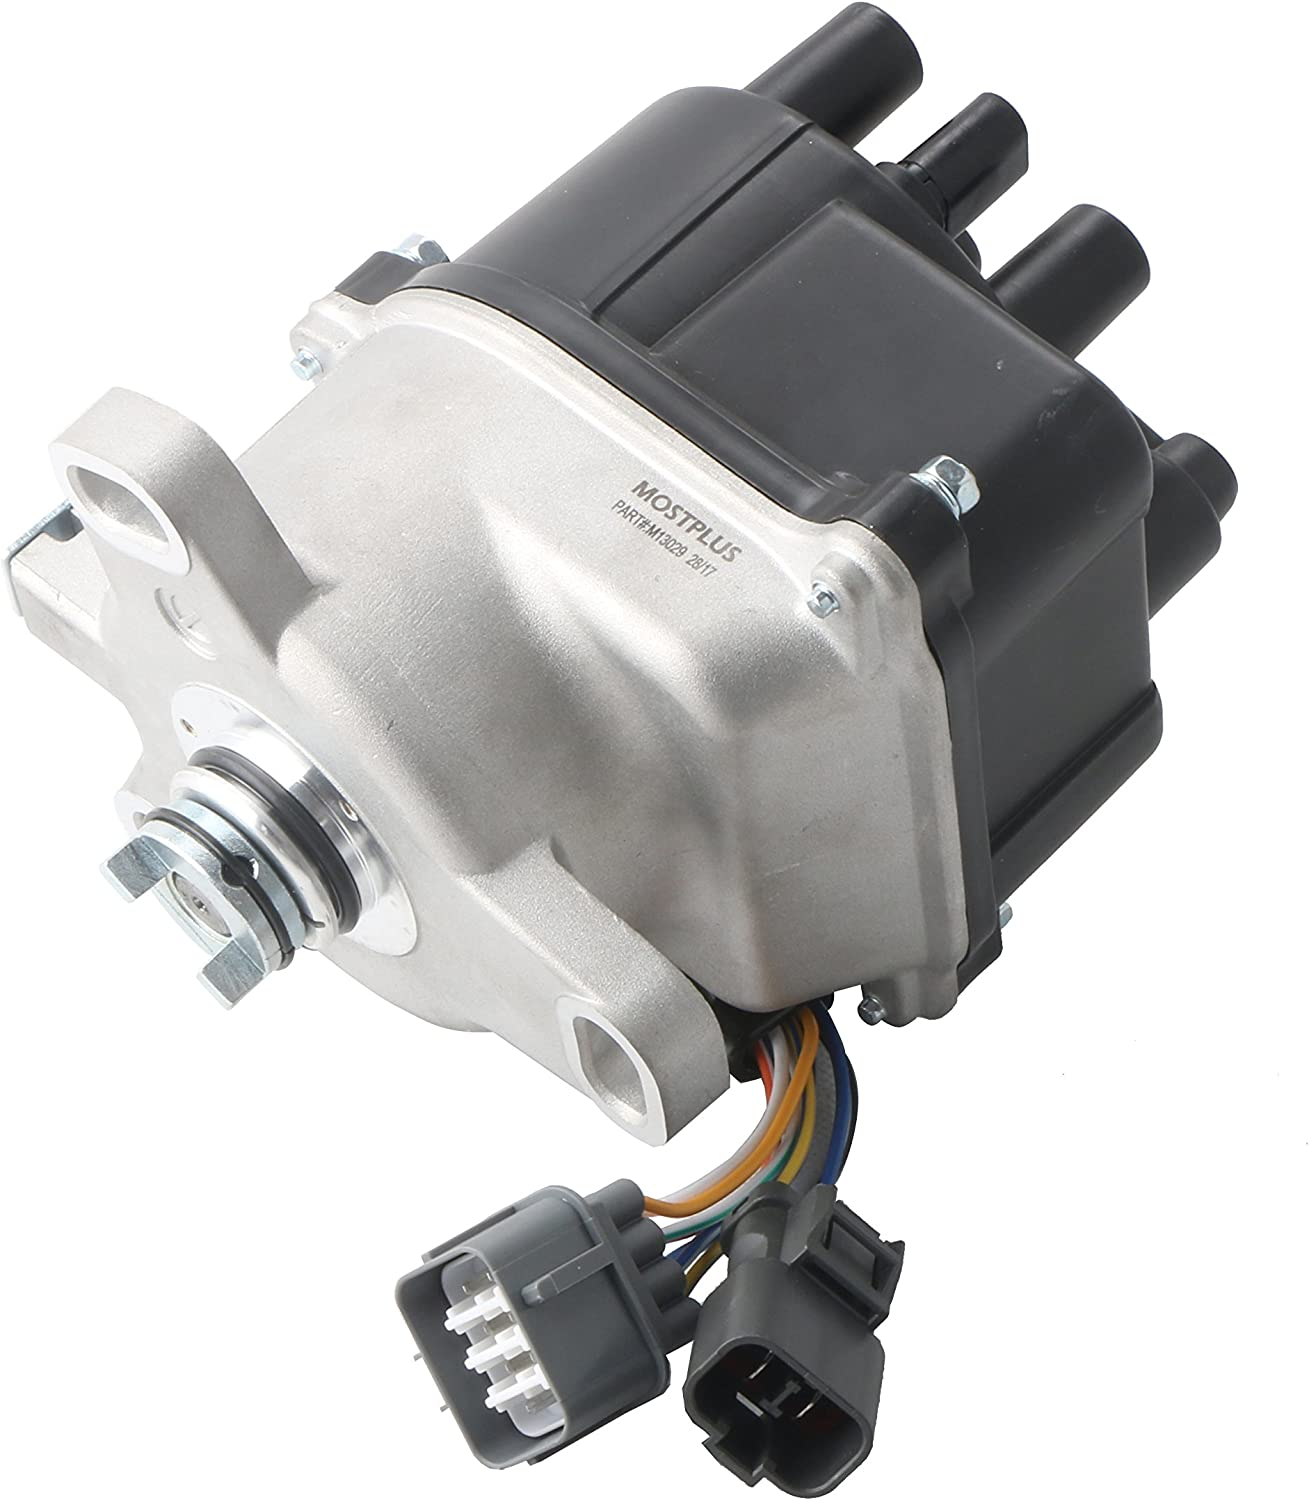 MOSTPLUS New Ignition Distributor for 92-95 ACURA INTEGRA 1.8L NON-VTEC ONLY TD46 TD-55U